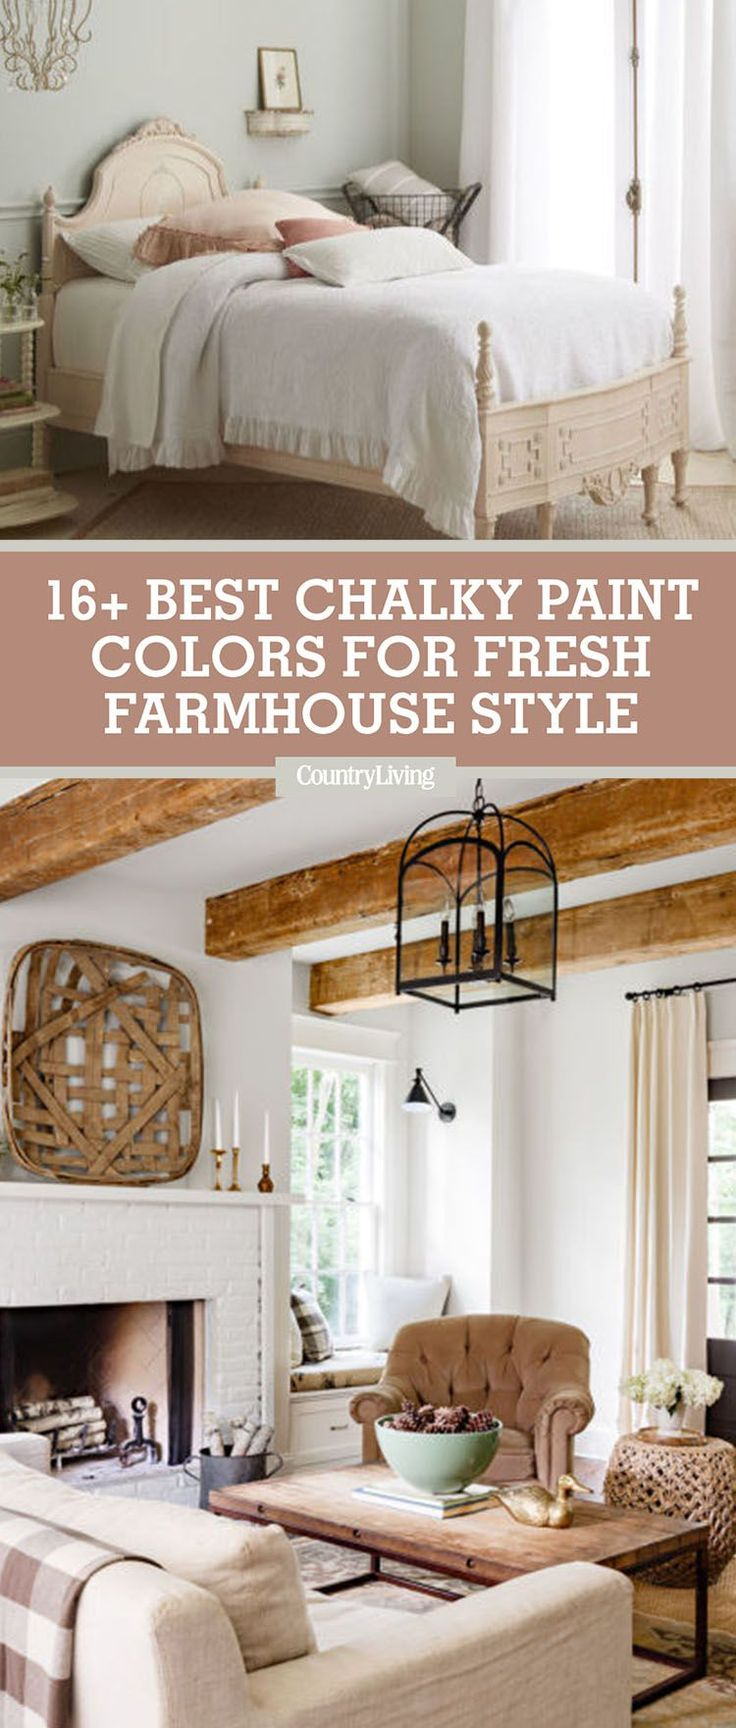 16 Best Chalky Paint Colors for Fresh